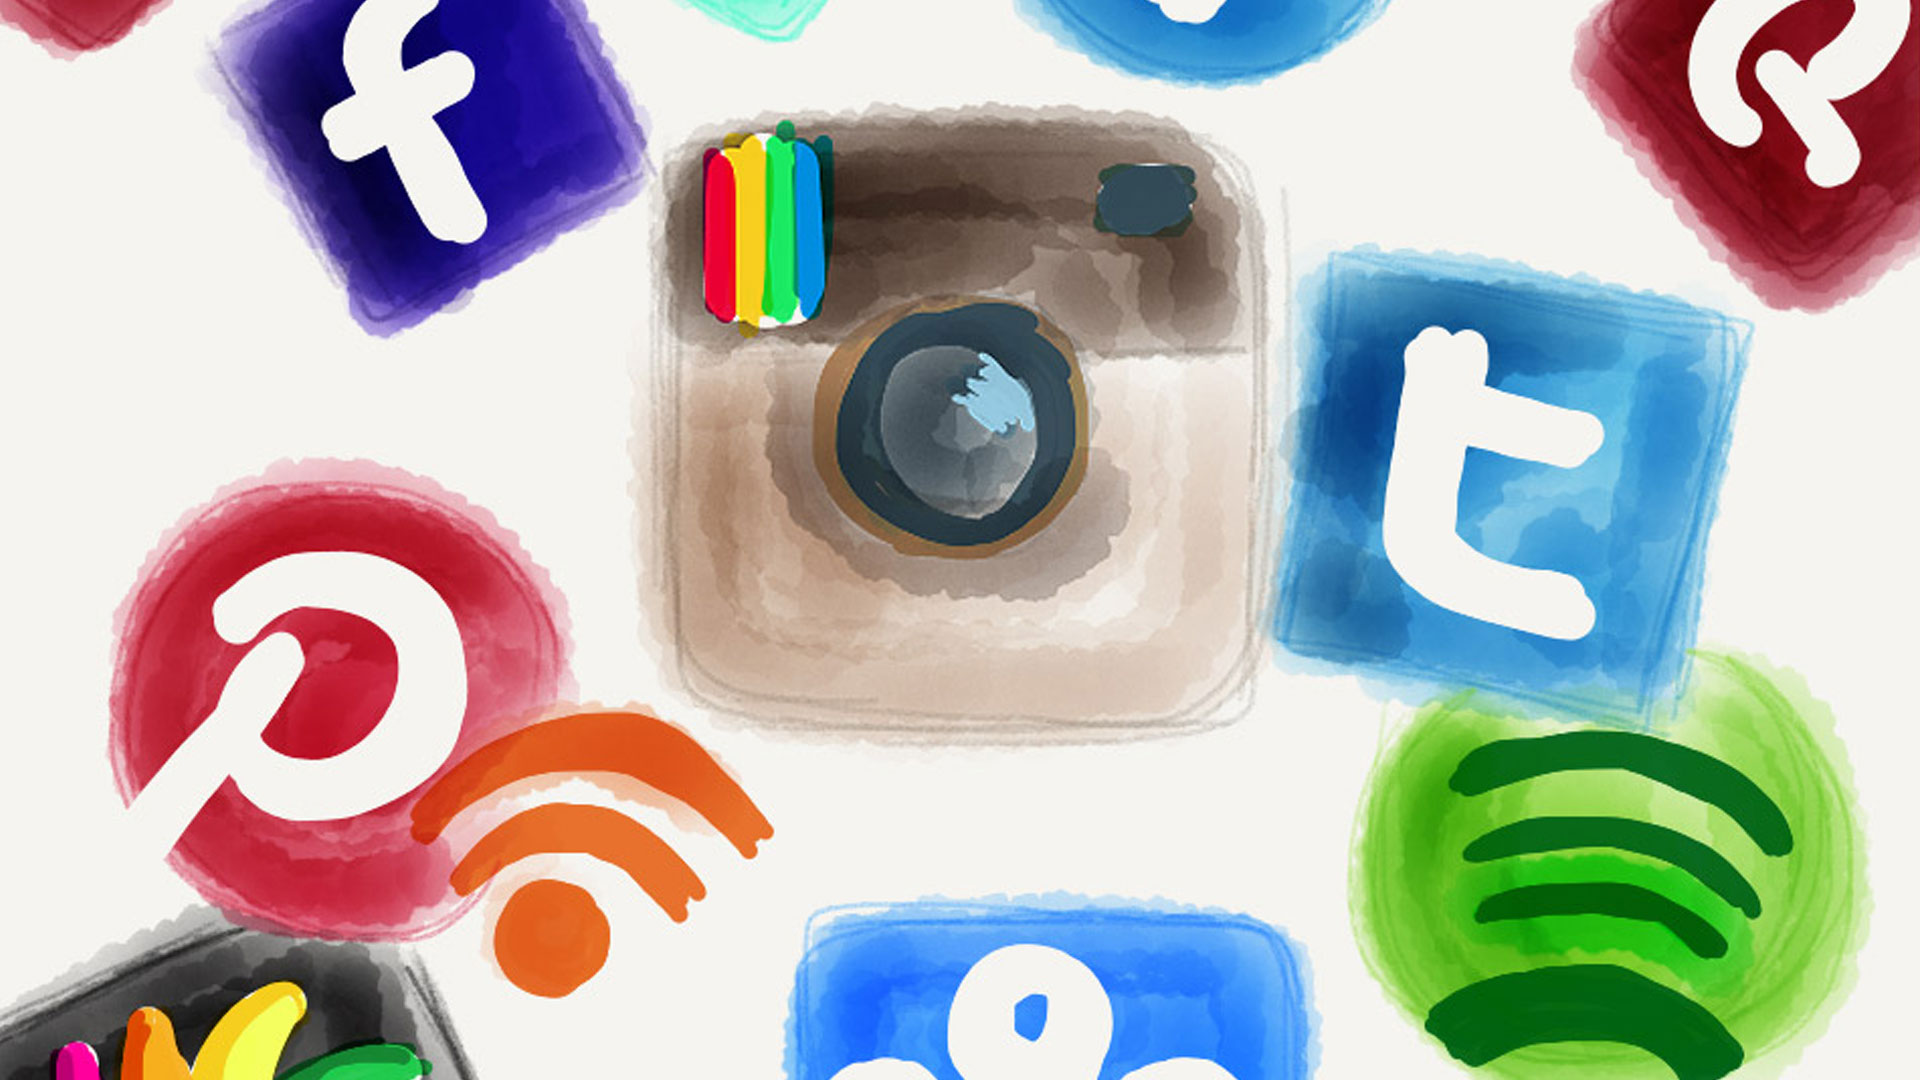 Collage of Digital (Social) Networks by Tanja Cappell via Flickr